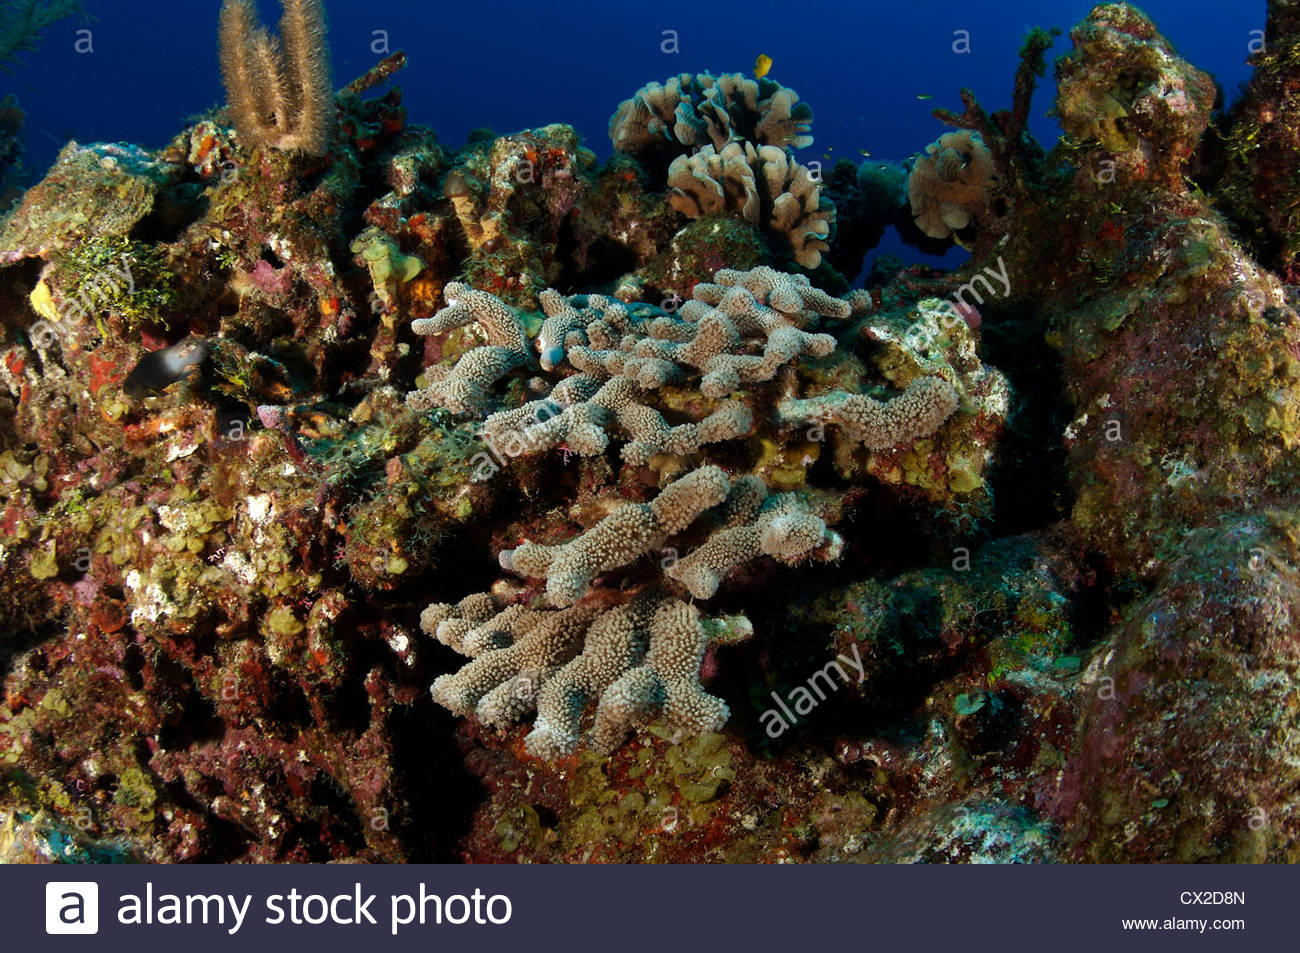 Tube Sponges Stock Photos & Tube Sponges Stock Images - Page 2 - Alamy